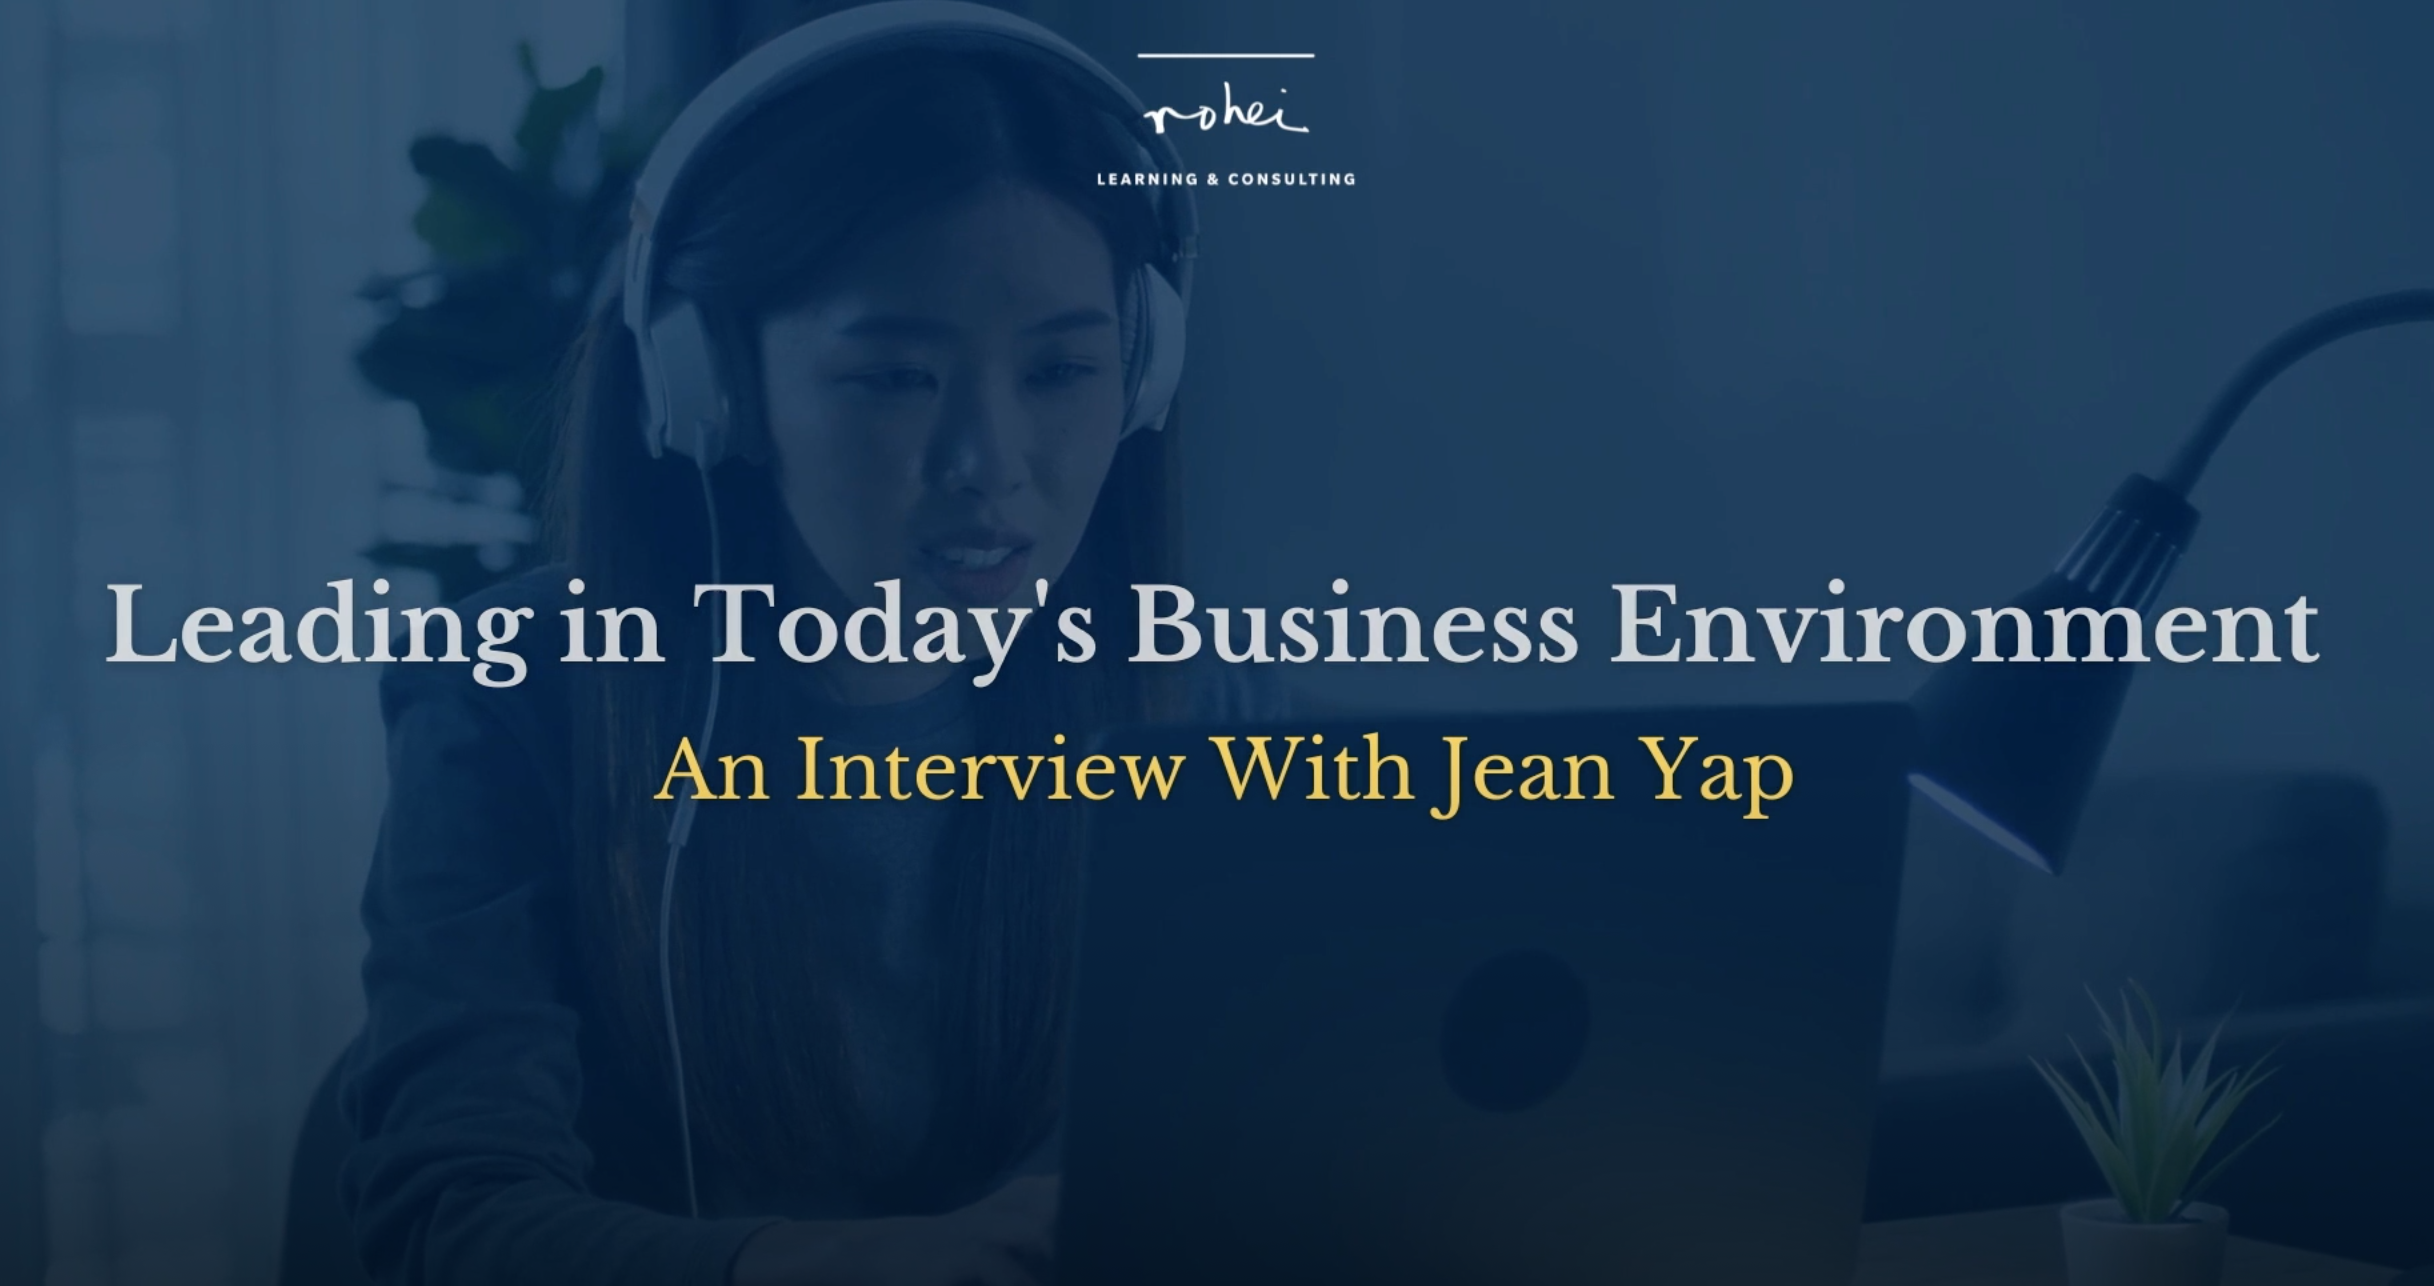 2021-07-30 Jean Yap Interview Leading in Today's Business Environment - A chat with an executive coa